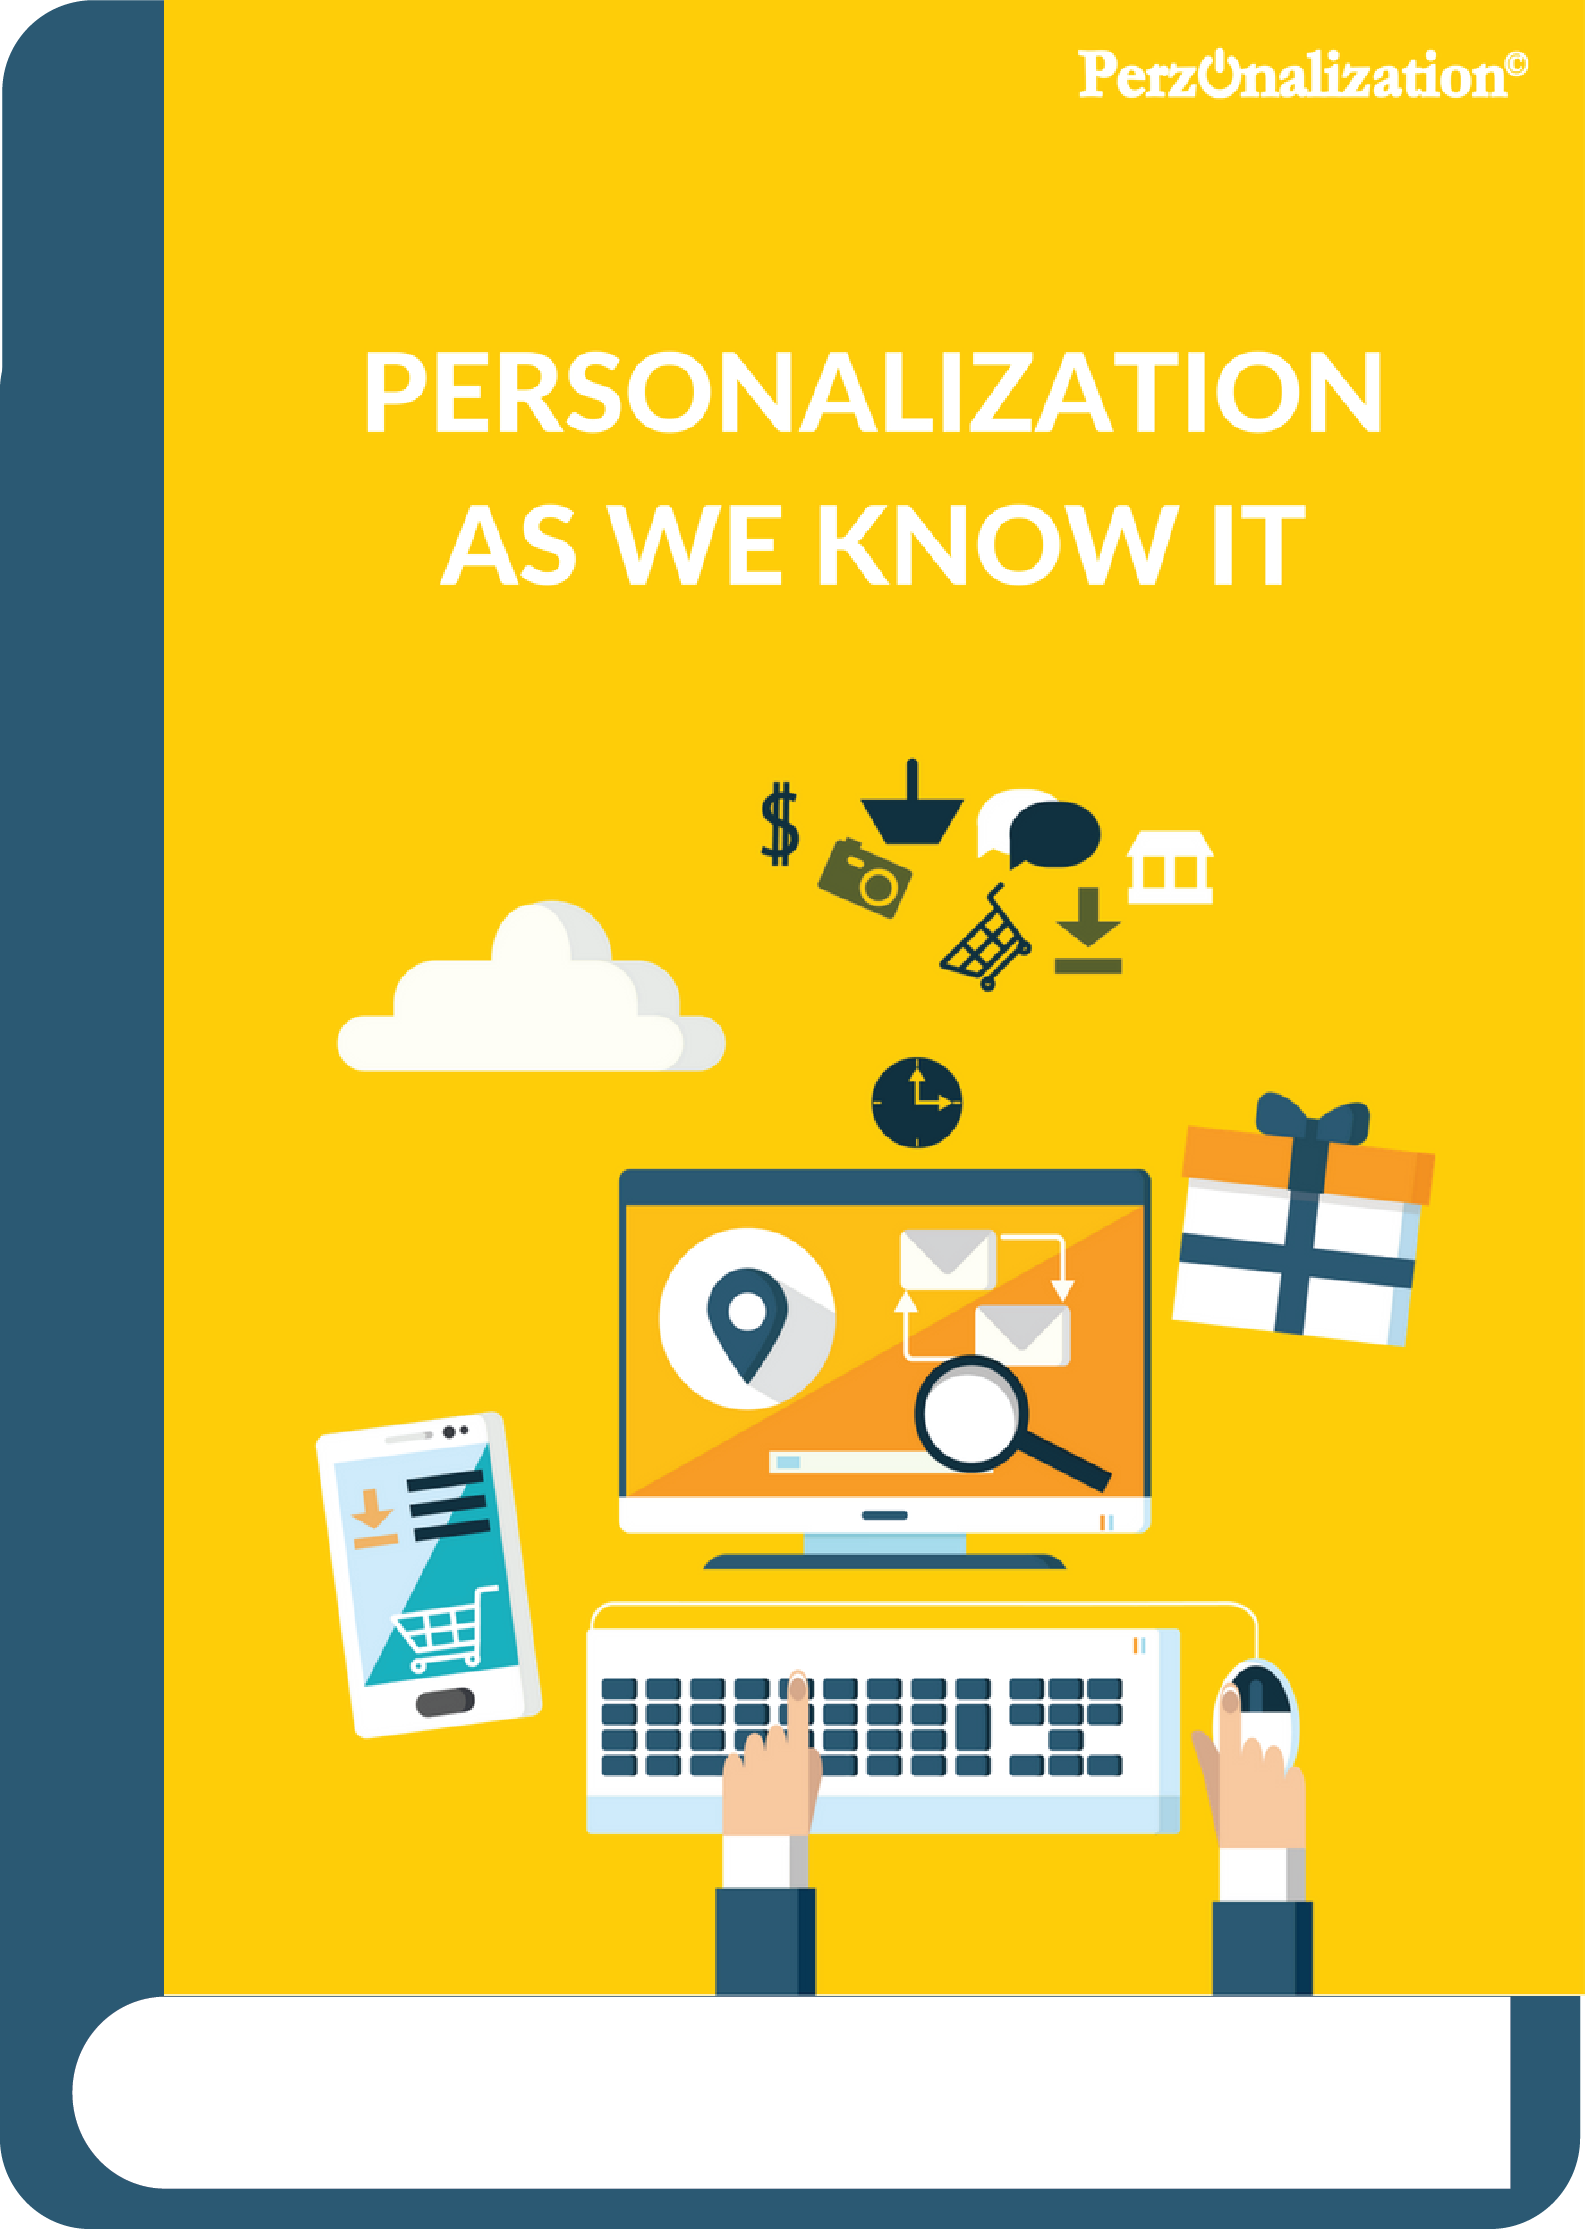 Personalization is creating experiences on web sites or through interactive media that are unique to individuals or segments of consumers. The job of personalization systems is to predict what the visitor is looking for on that page and then choose the most relevant content for her. In this eBook, you're going to discover different types of personalization and how eCommerce websites use this tool.